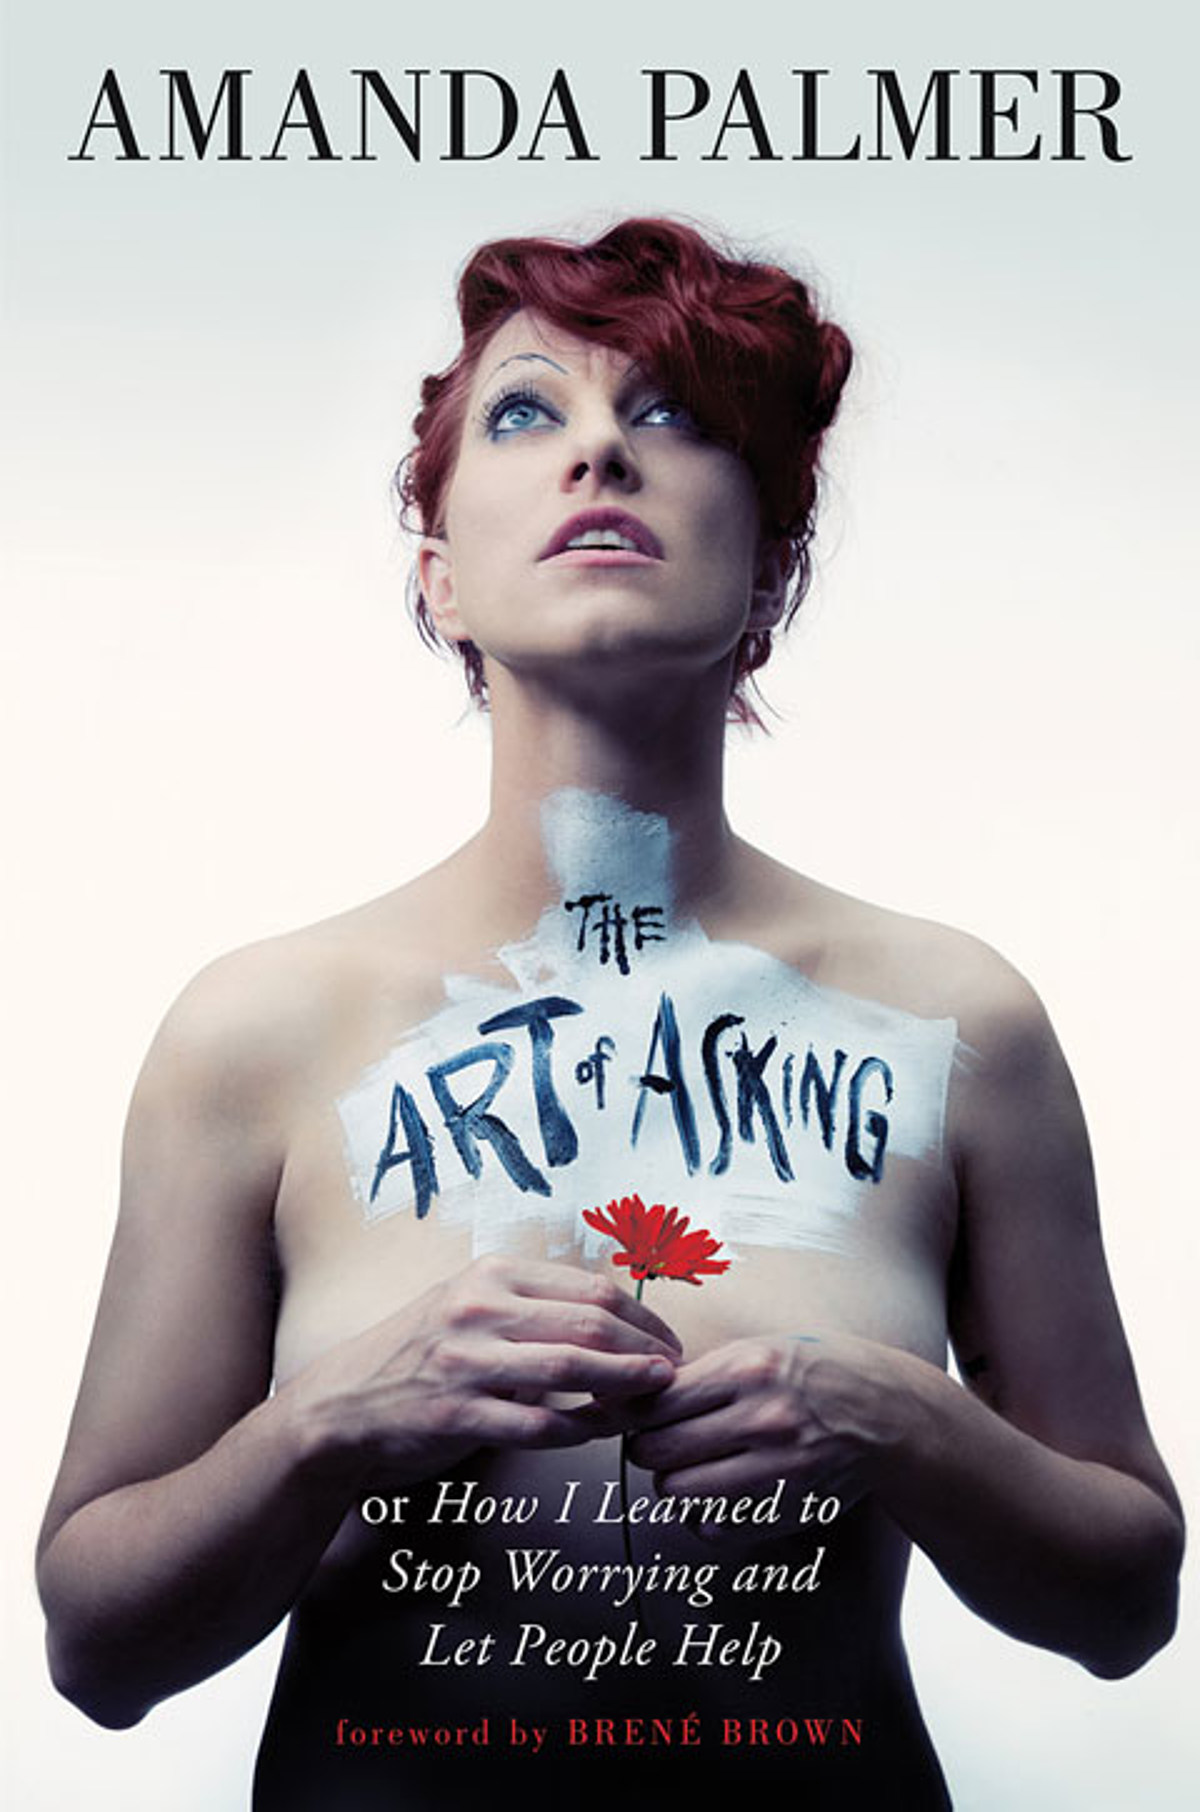 Amanda King Nude amanda palmer releasing a book, reveals cover (and nsfw nude